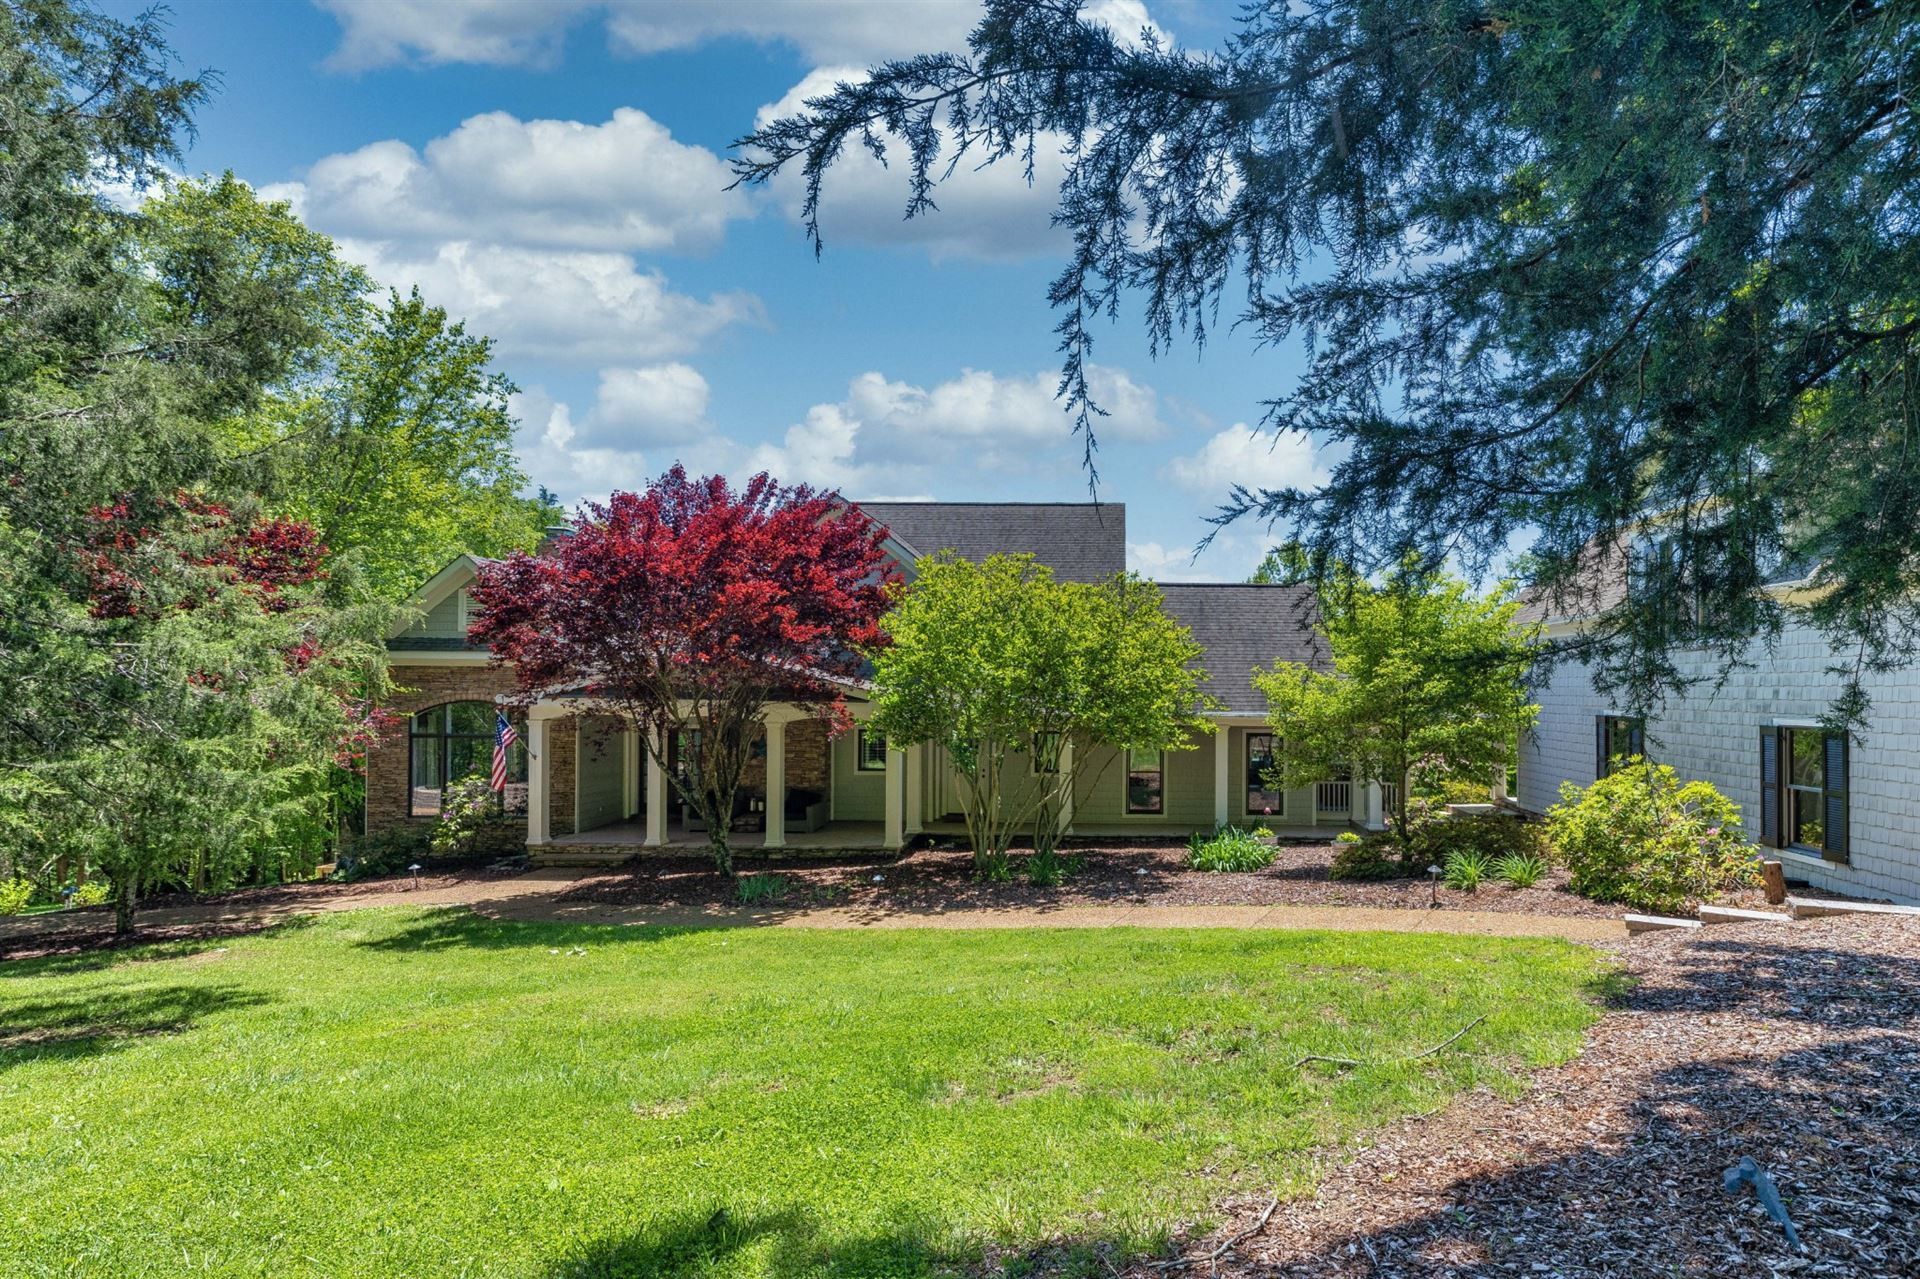 Photo of 3010 Old Hillsboro Rd, Franklin, TN 37064 (MLS # 2253667)